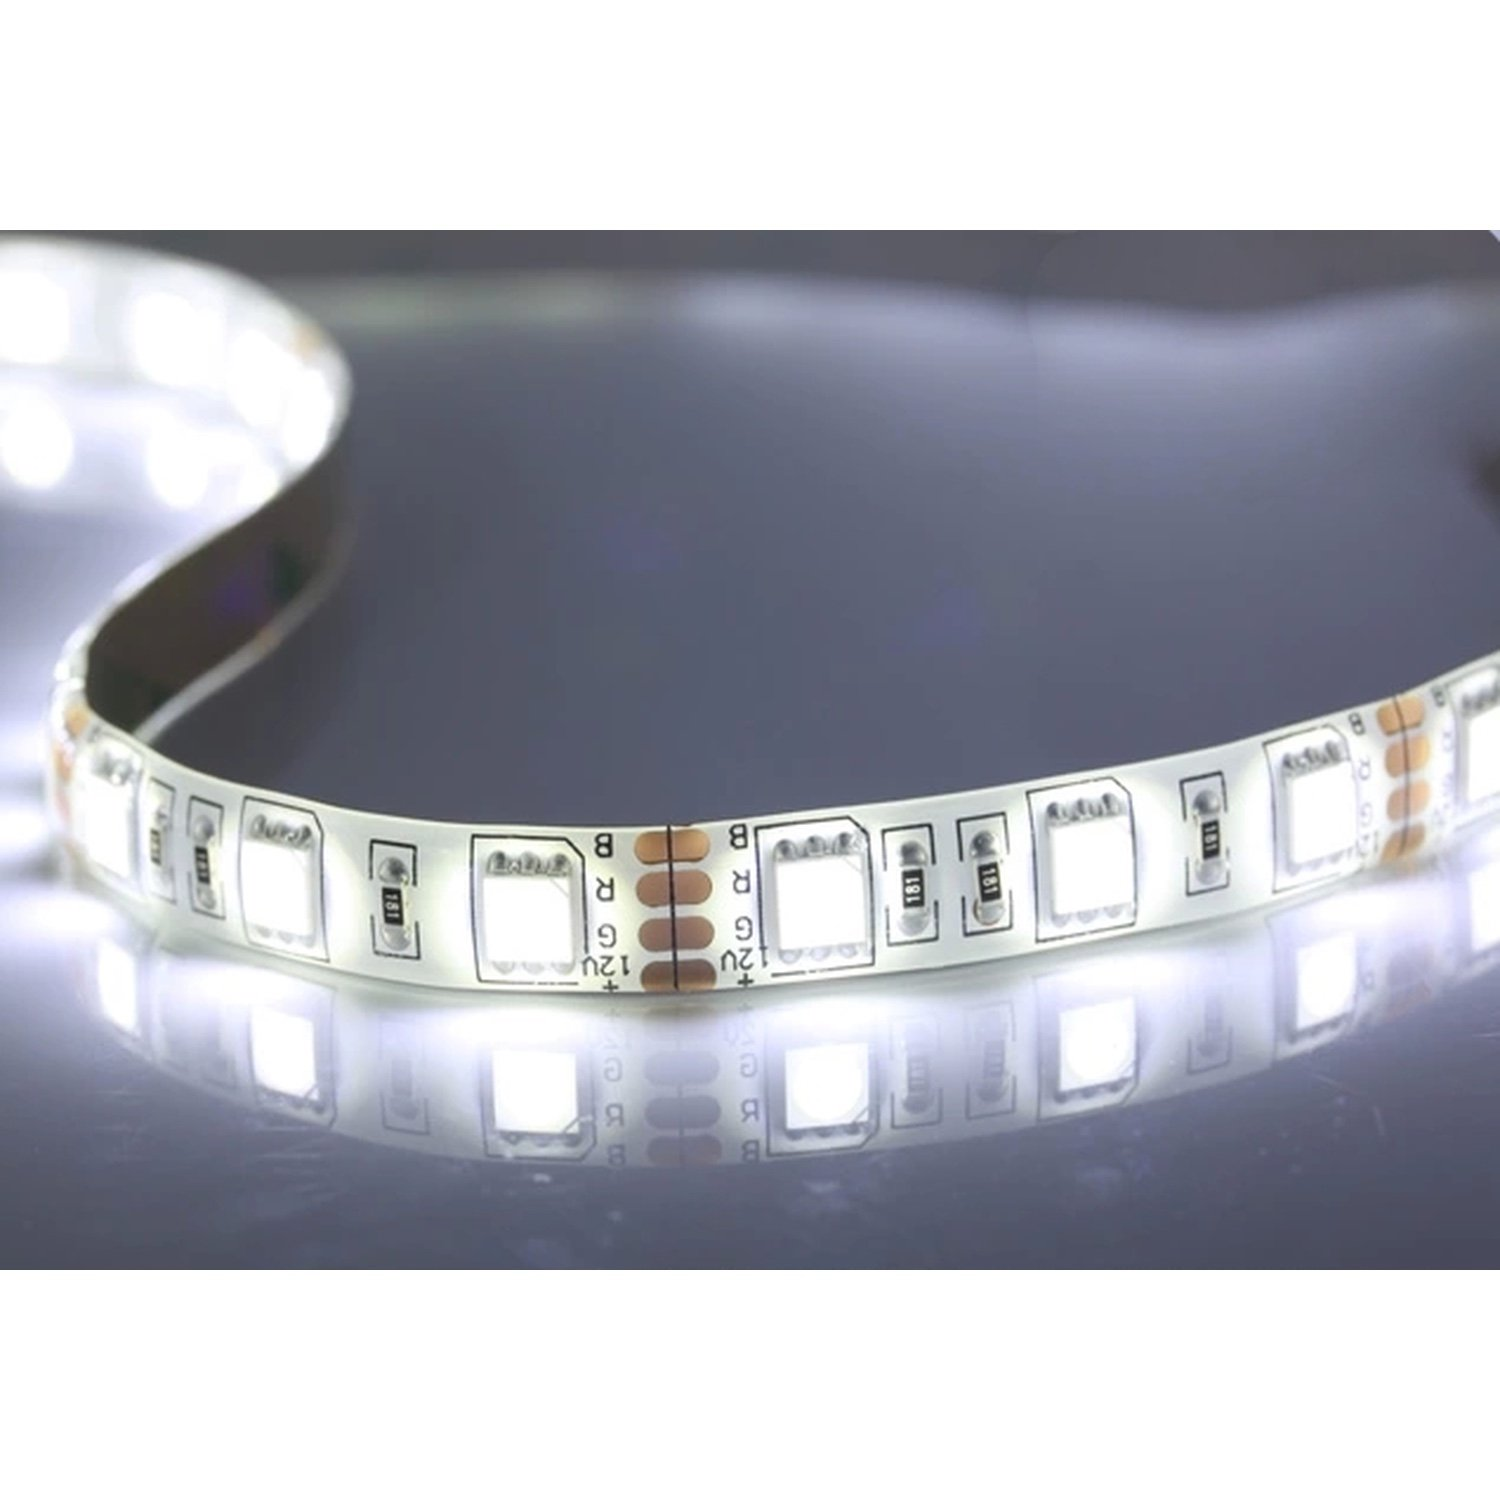 5METERS 60-LED 5050 SMD Waterproof White Bendable Light Strip Power Saving 6000-6500k color kwb 5v usb led strip light 5050 smd waterproof with rgb controller